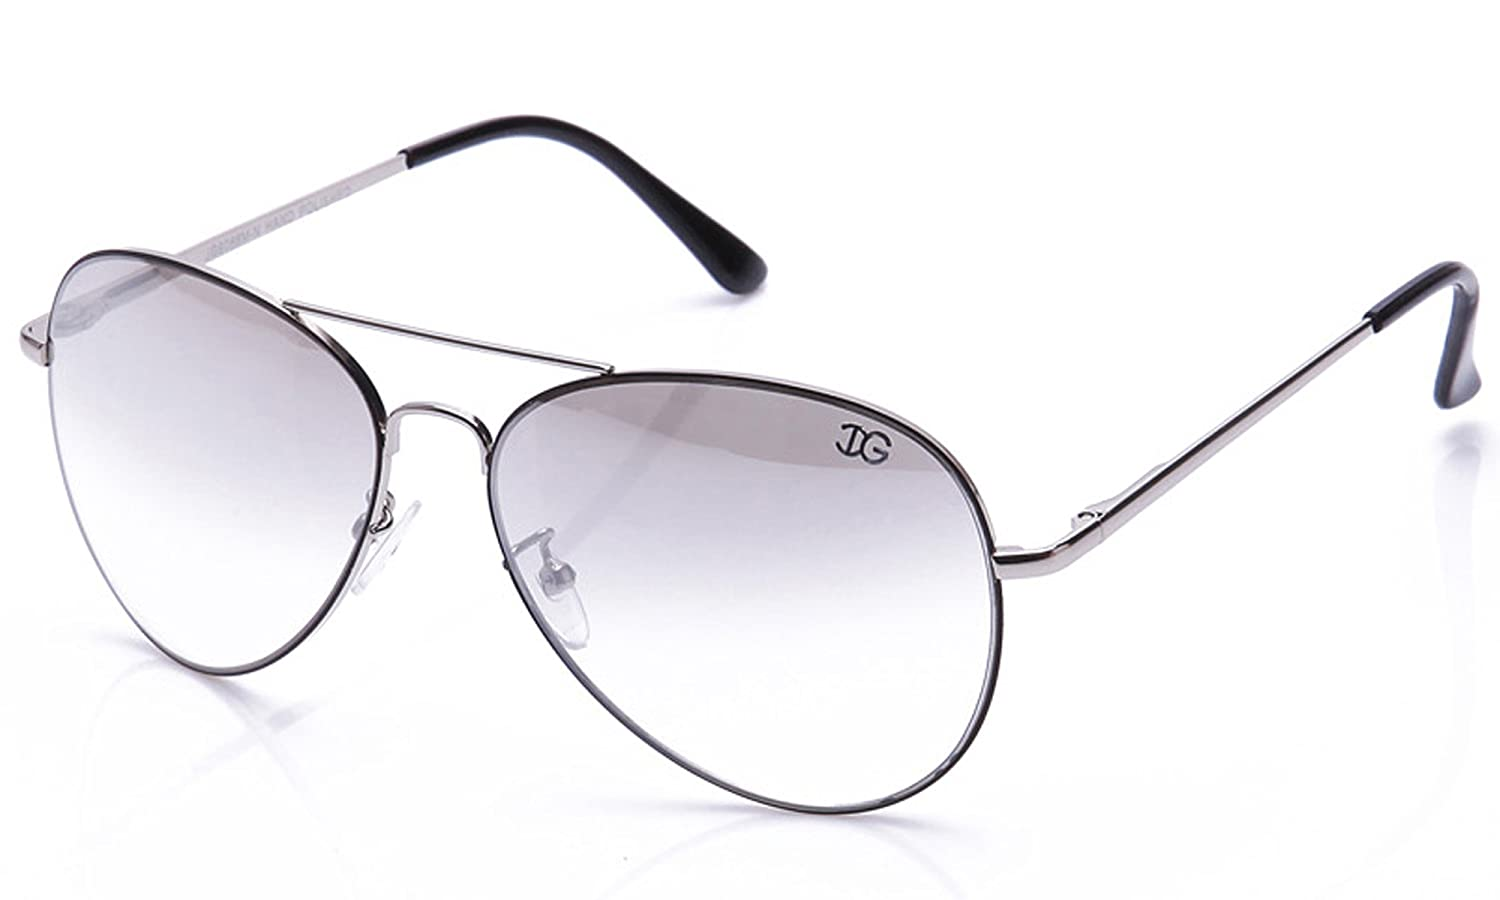 IG Metal Fashion Aviator Style Neon Colors Classic Metal Frame Sunglasses in Black/Silver